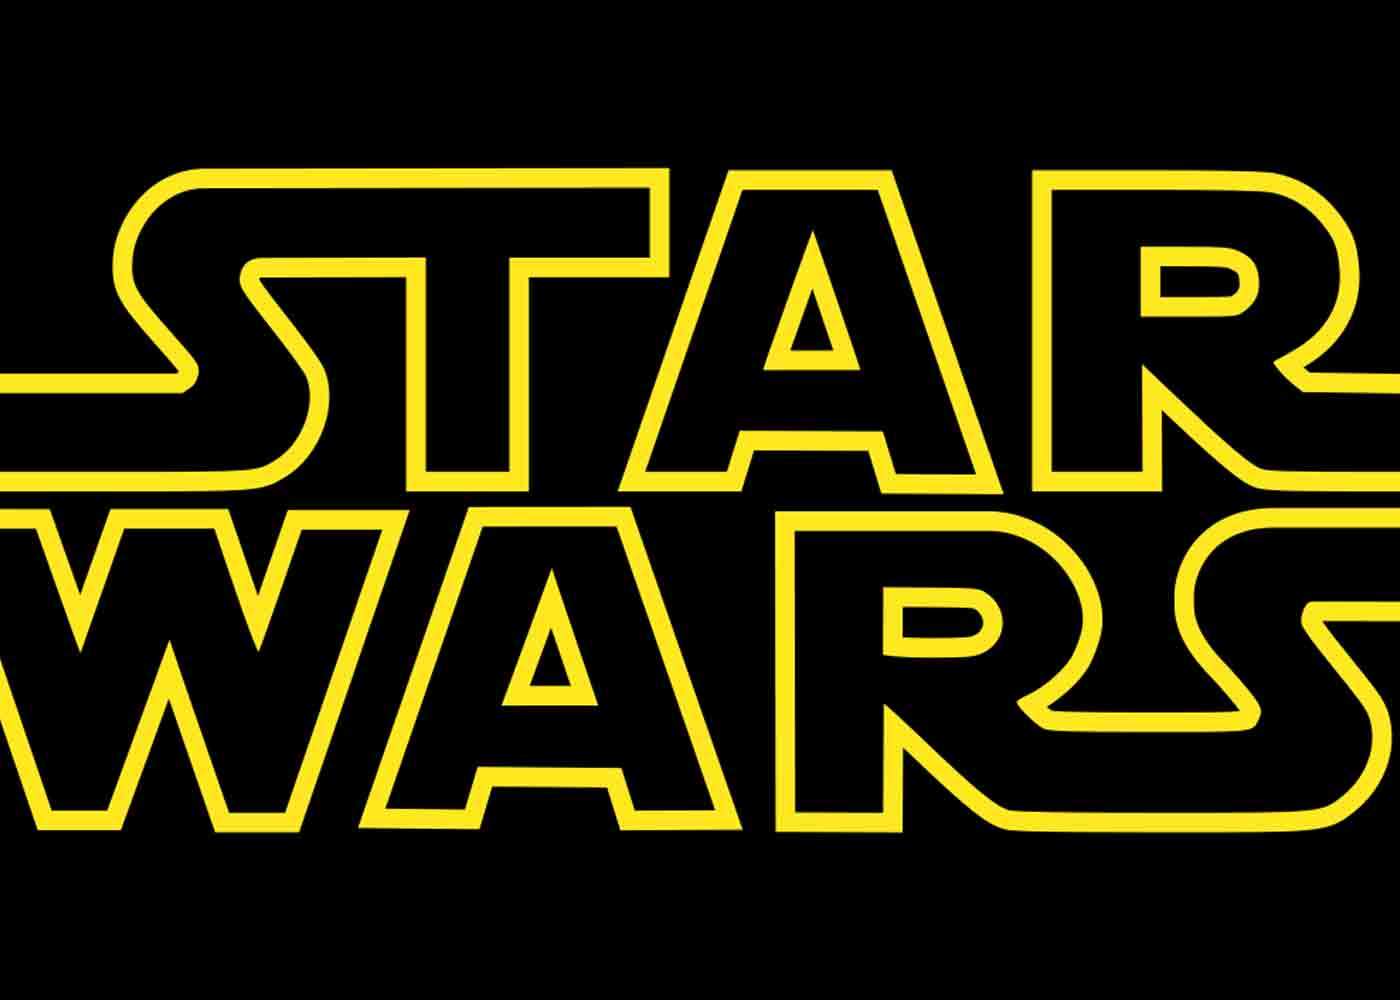 Colin Trevorrow Talks About Star Wars: Episode IX and Han Solo Movie